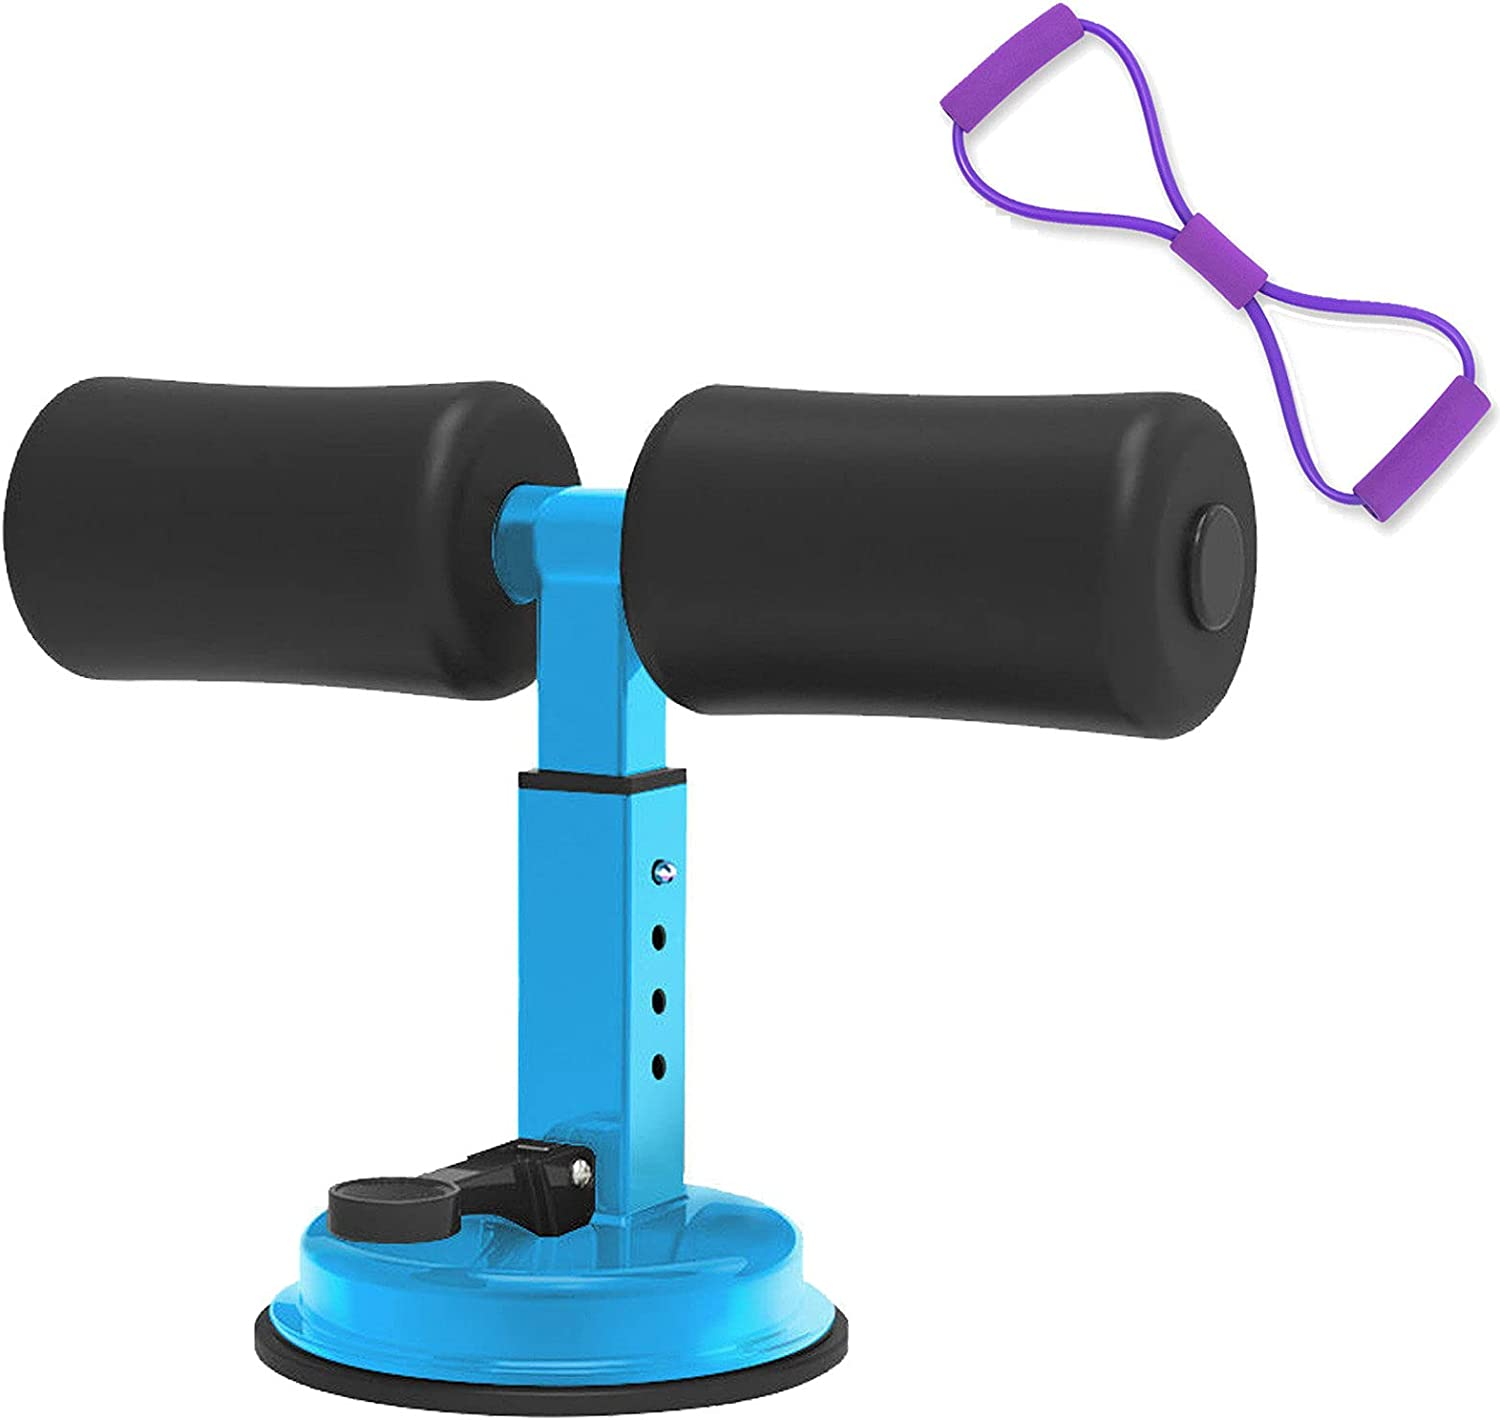 weiranxinxi Self-Suction Max Limited Special Price 64% OFF Sit Up Fitnes Bar Sit-up Adjustable